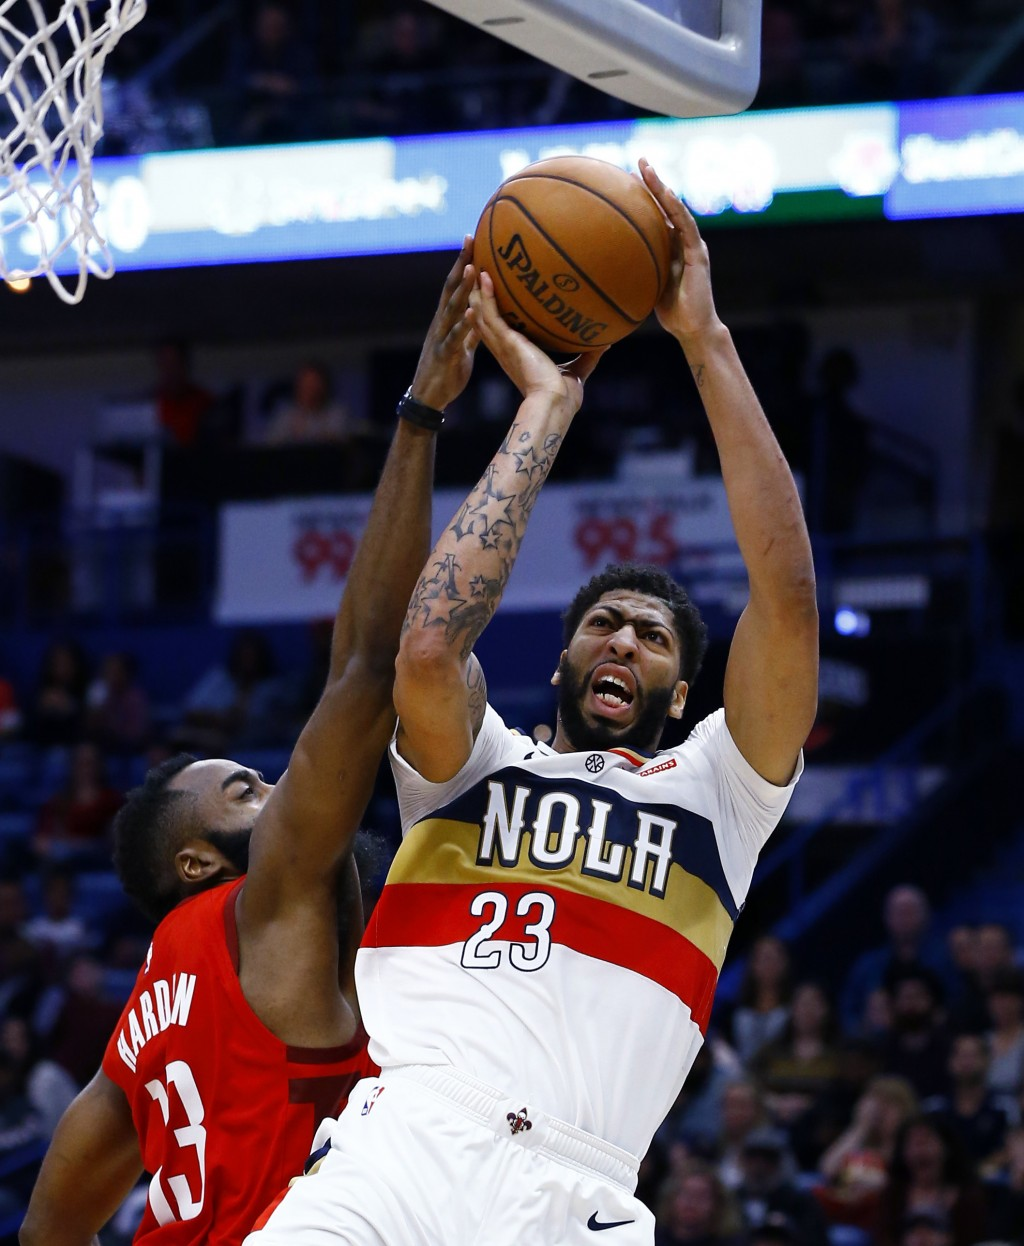 New Orleans Pelicans forward Anthony Davis (23) tries for a shot as Houston Rockets guard James Harden (13) defends during the second half of an NBA b...